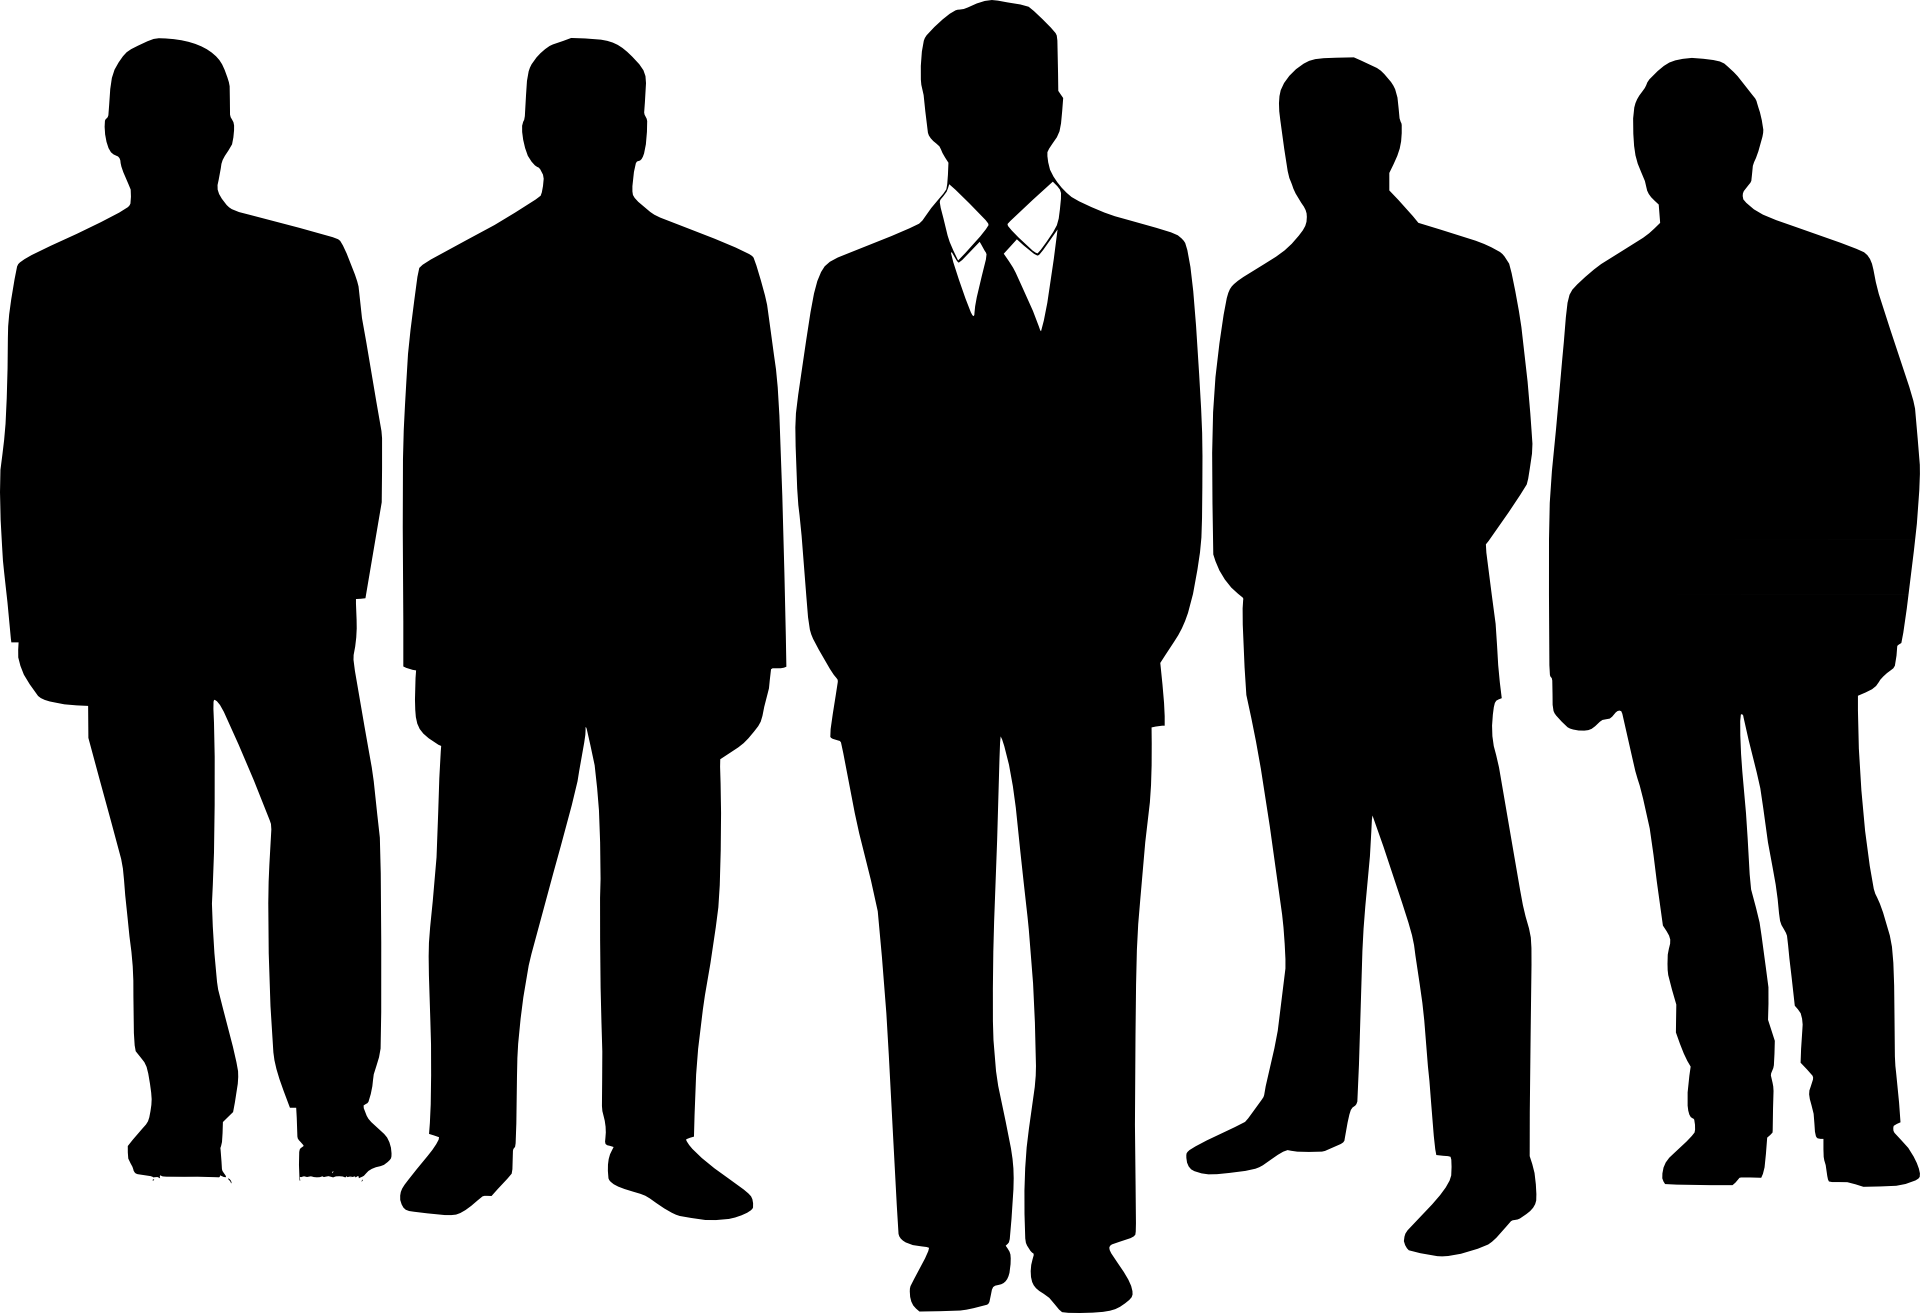 hight resolution of business people silhouette clipart panda free clipart images